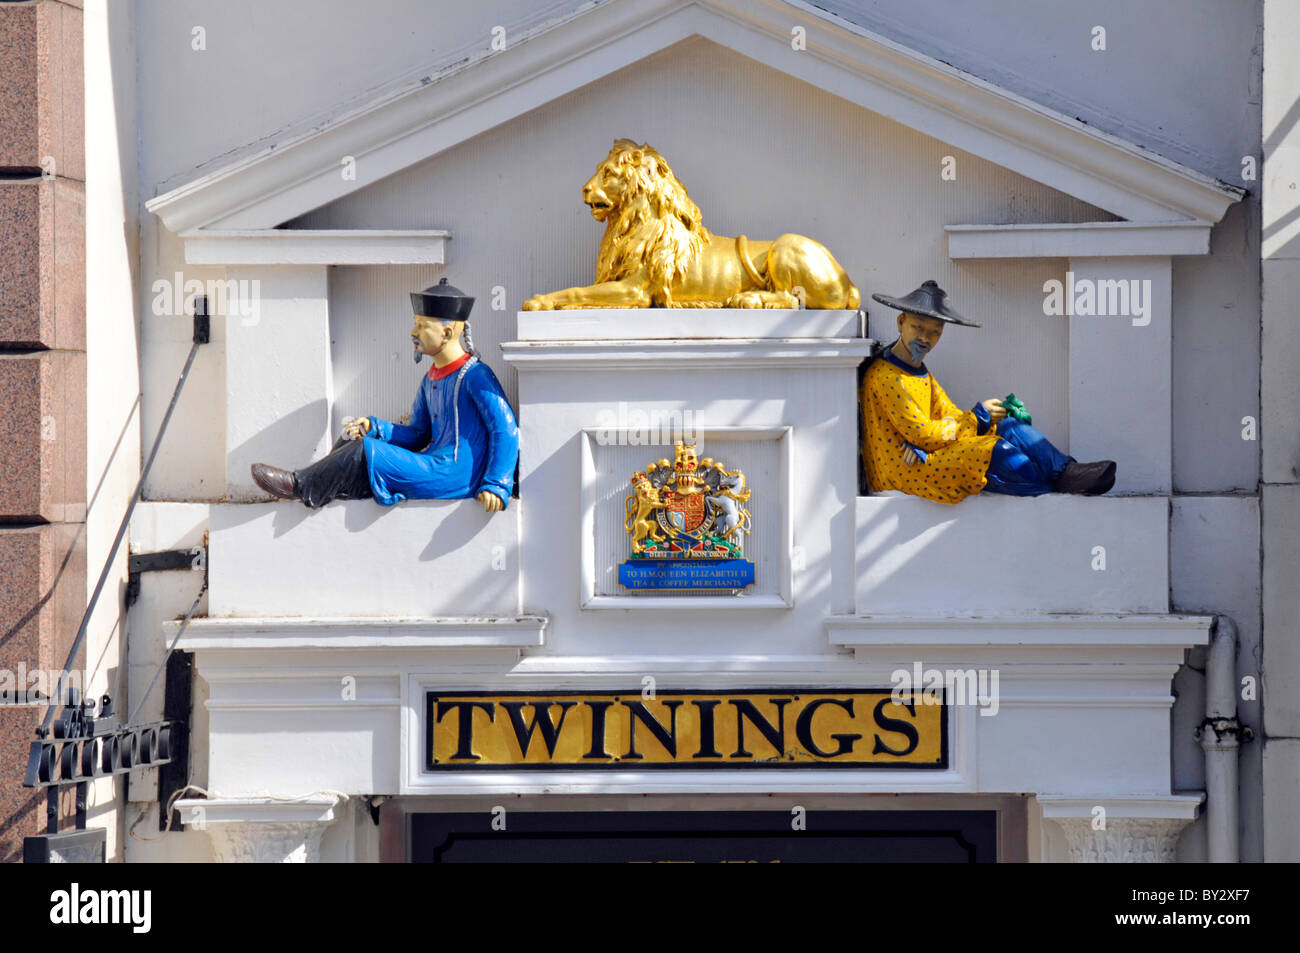 Colourful close up of sign and Royal Warrant above Old Twinings Tea Shop (brand owned by Associated British Foods) - Stock Image